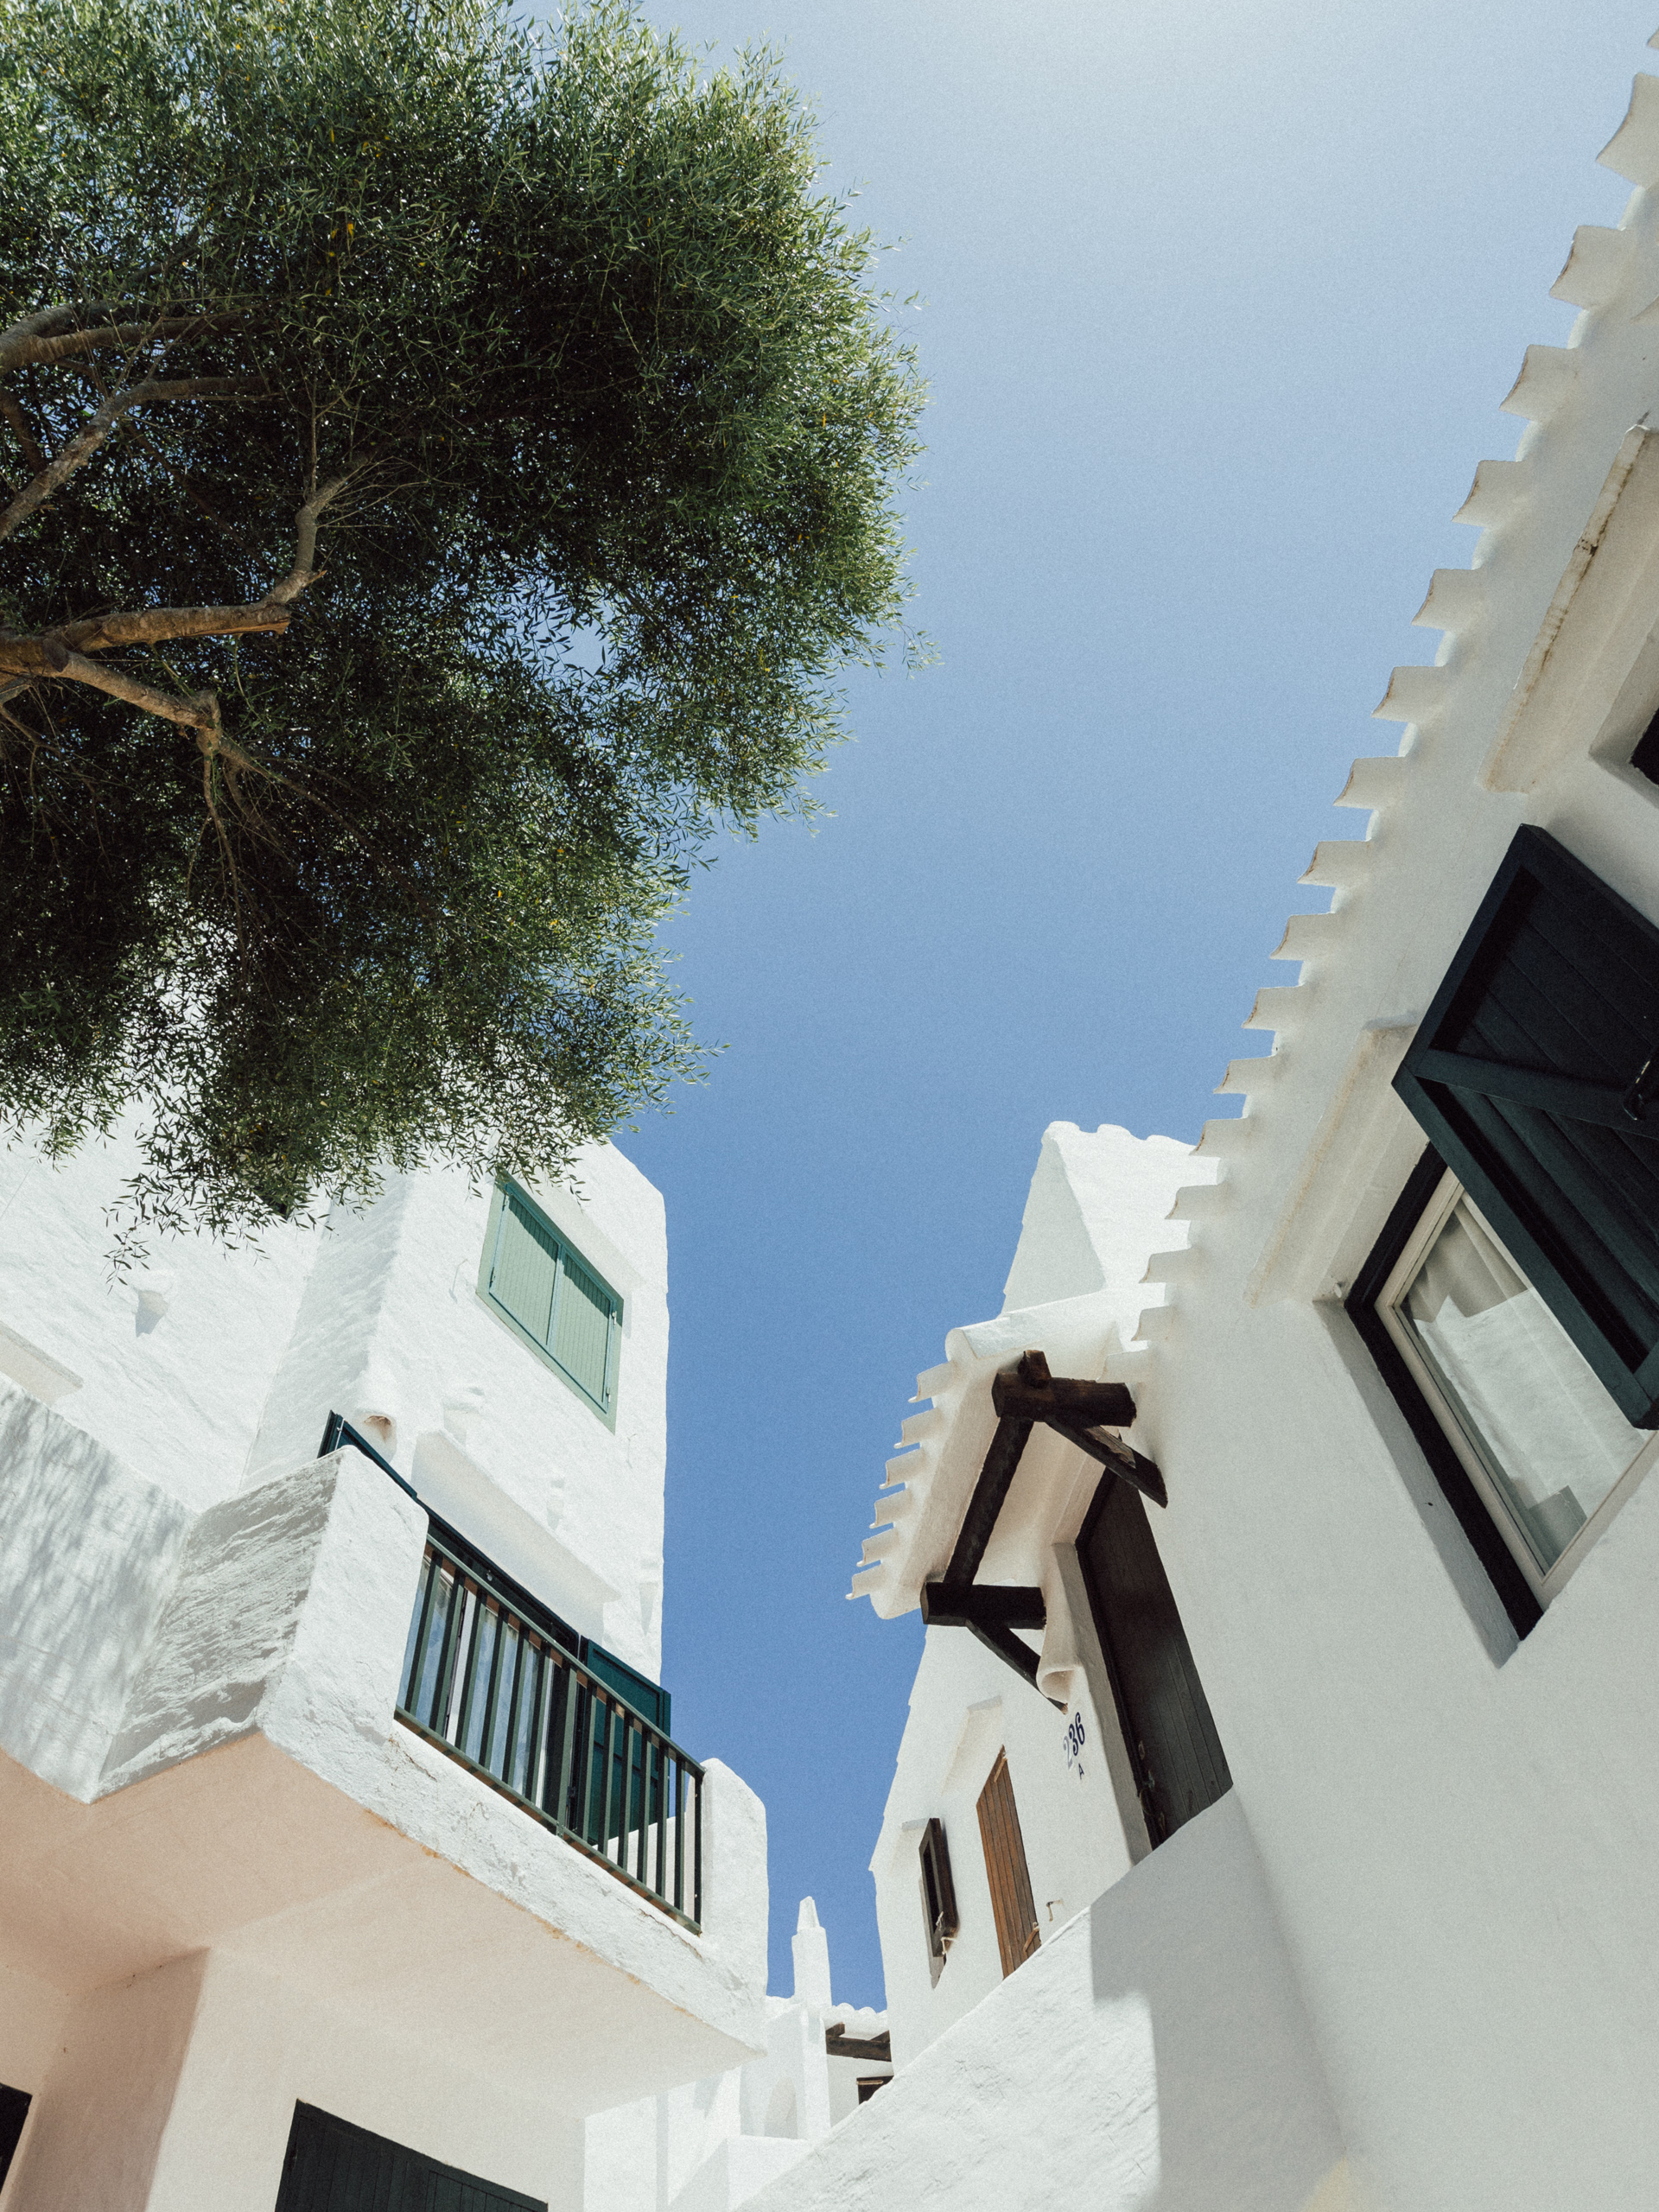 White houses of Binibequer